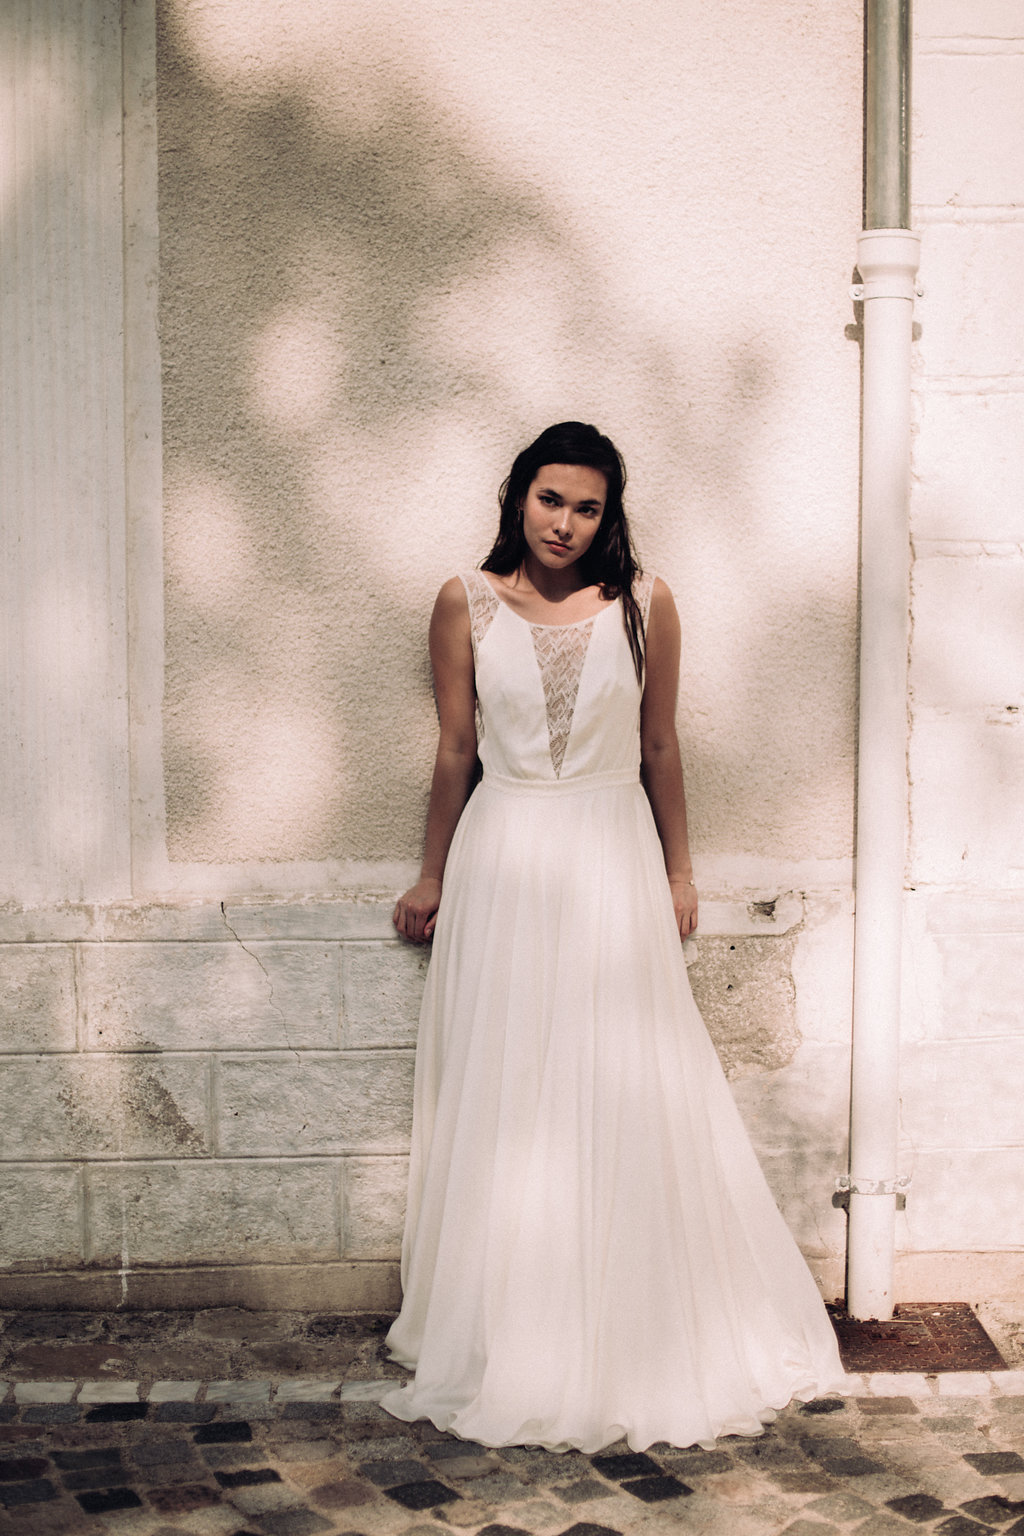 robe-de-mariee-sur-mesure-mariage-paris-toulouse-atelier-swan-collection-2019